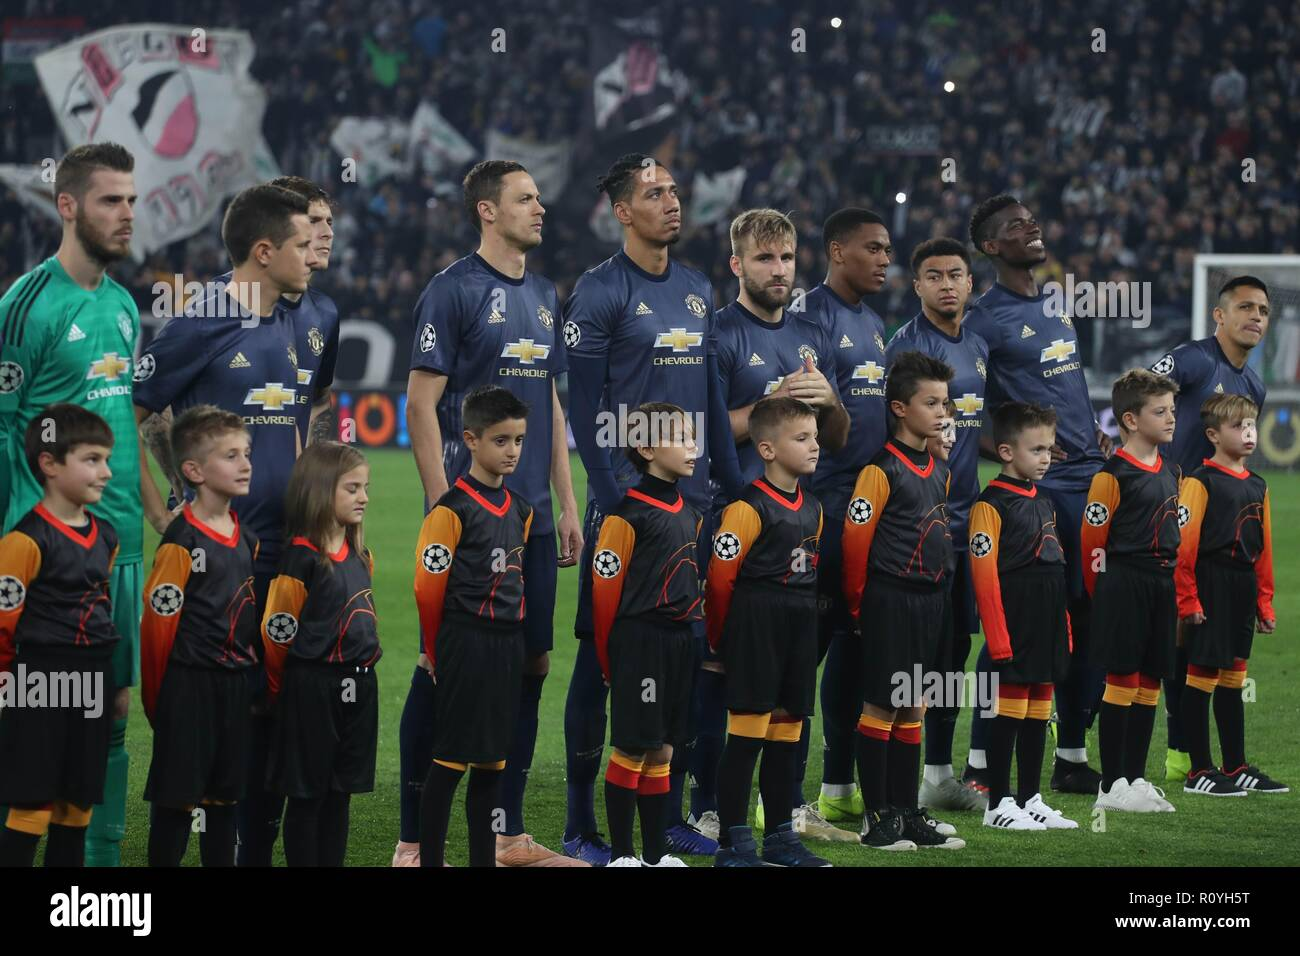 juventus team group high resolution stock photography and images alamy https www alamy com turin italy 7th november 2018 team manchester united during the uefa champions league group h football match between juventus and manchester united on november 7 2018 at juventus stadium in turin italy photo laurent lairys dppi credit laurent lairysagence locevaphotosalamy live news image224340980 html